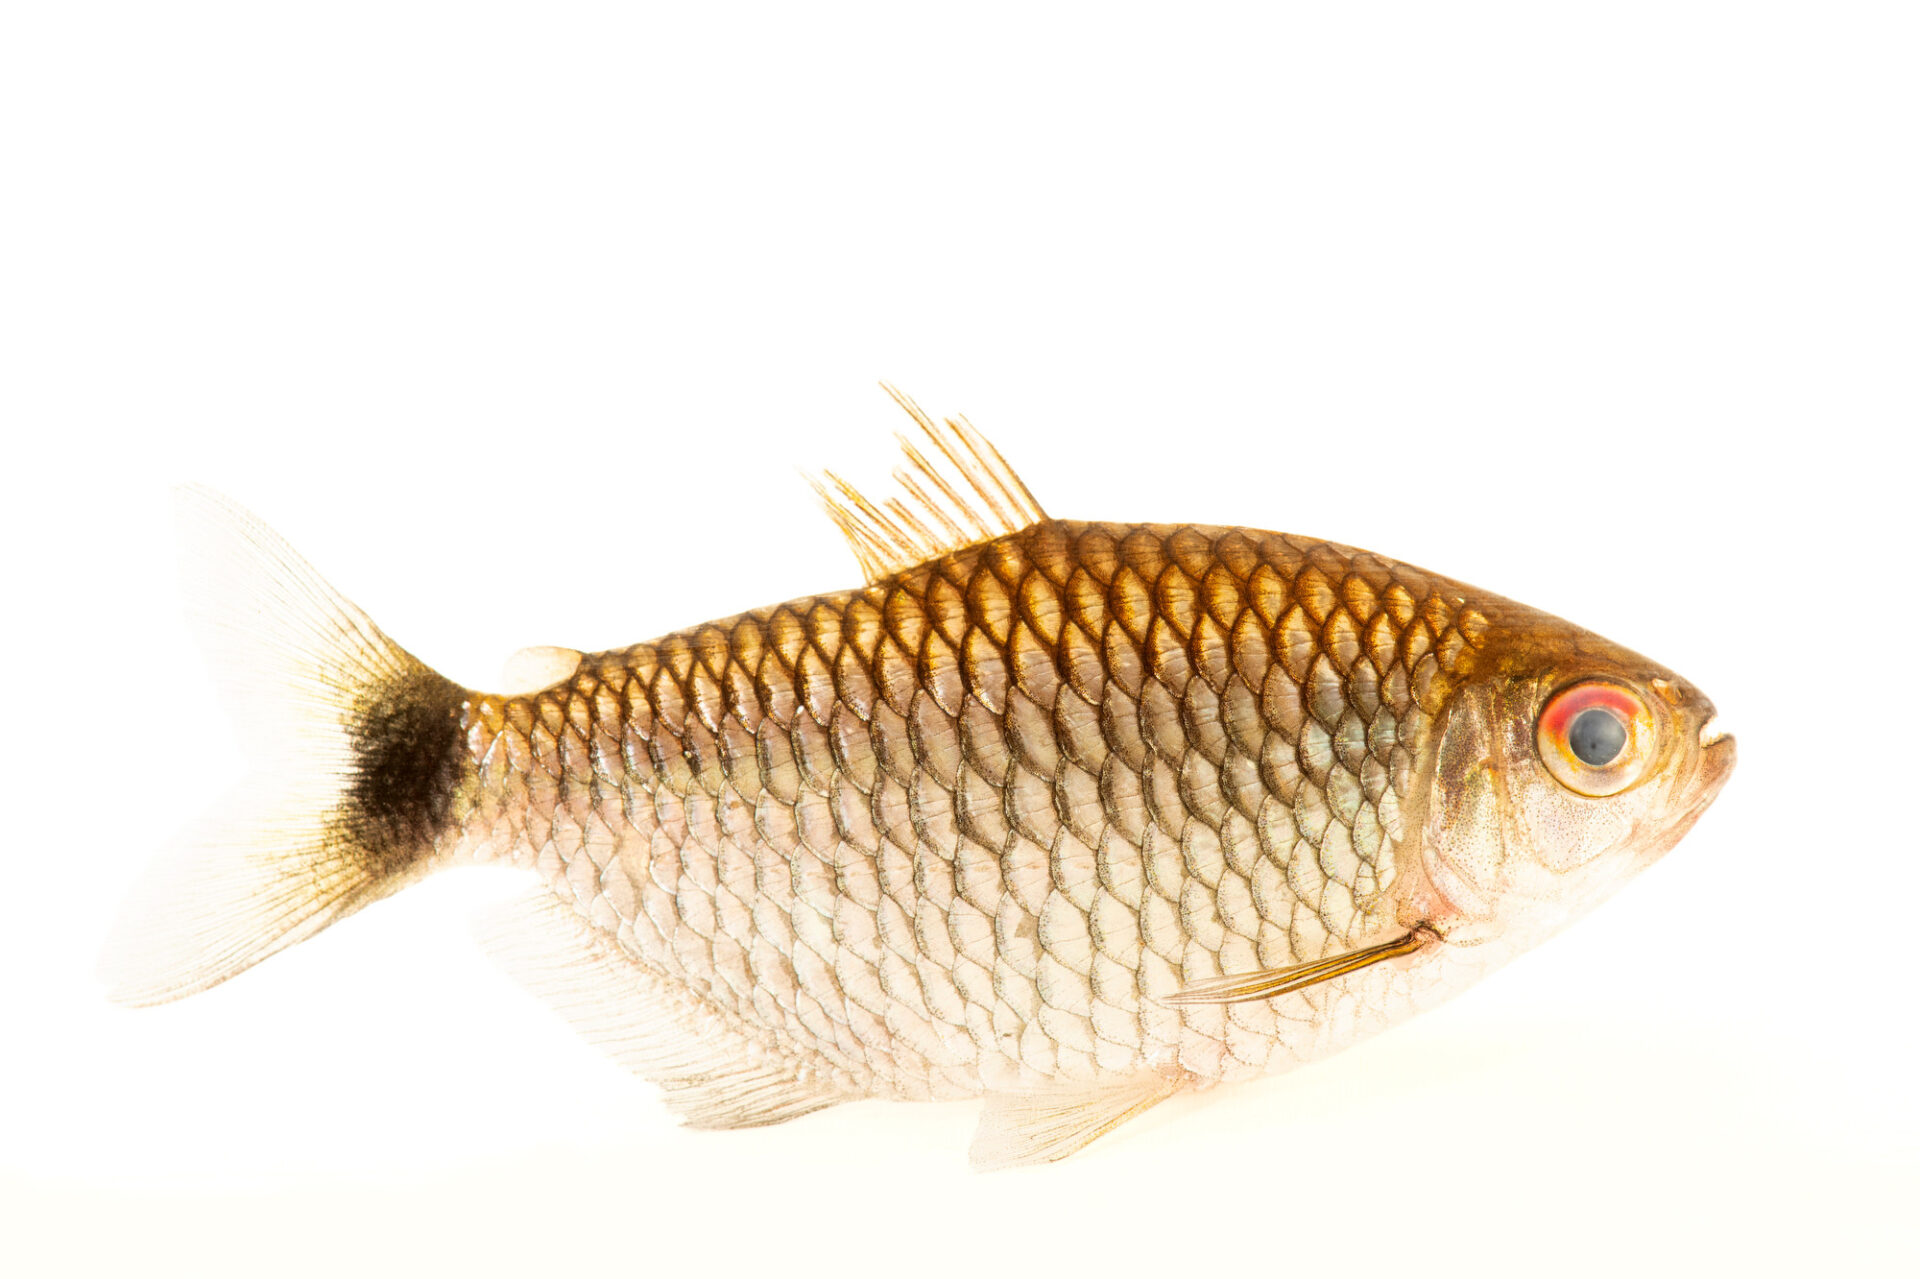 Photo: A tetra (Markiana nigripinnis) at the aquarium of the Manaus Zoo. This Zoo is ran by the military, or CIGS.